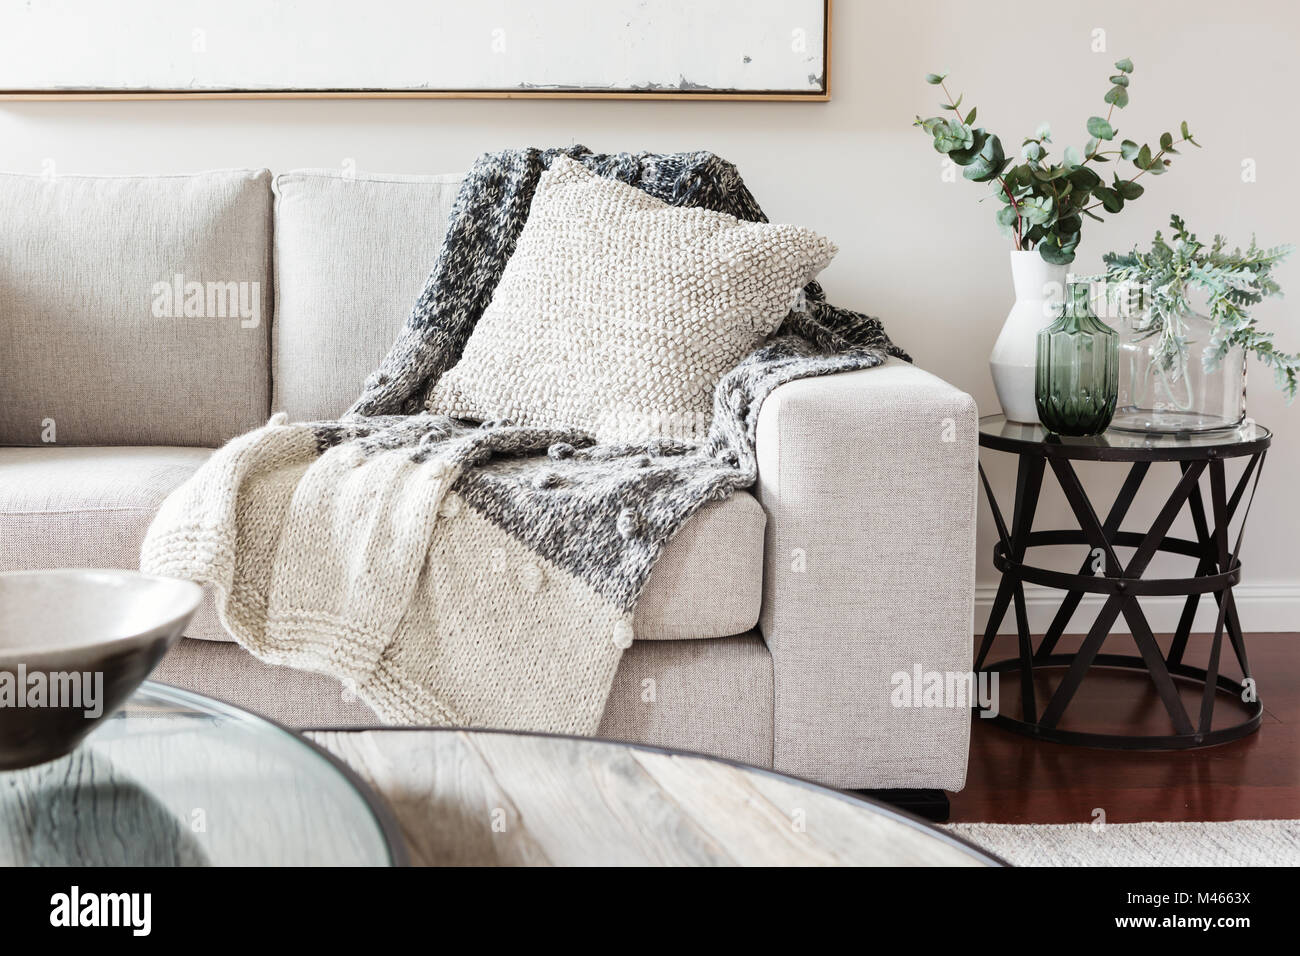 Textured layers interior styling of cushion sofa dn throw in nuetral ...